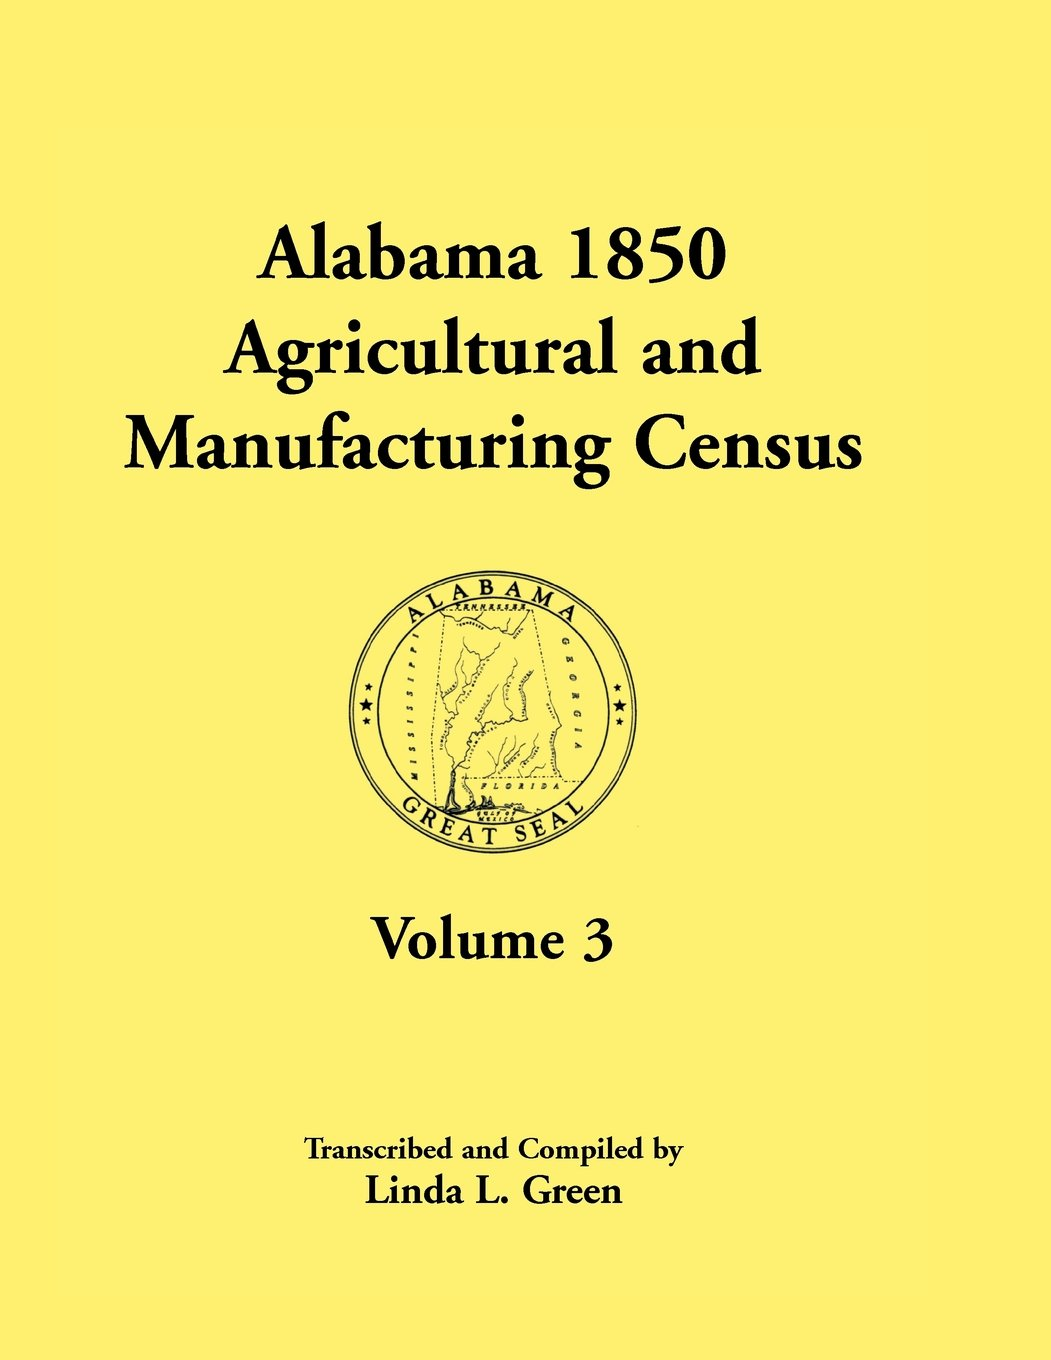 Read Online Alabama 1850 Agricultural and Manufacturing Census, Volume 3 for Autauga, Baldwin, Barbour, Benton, Bibb, Blount, Butler, Chambers, Cherokee, Choctaw, ... Coffee, Conecuh, Coosa, Covington Counties PDF